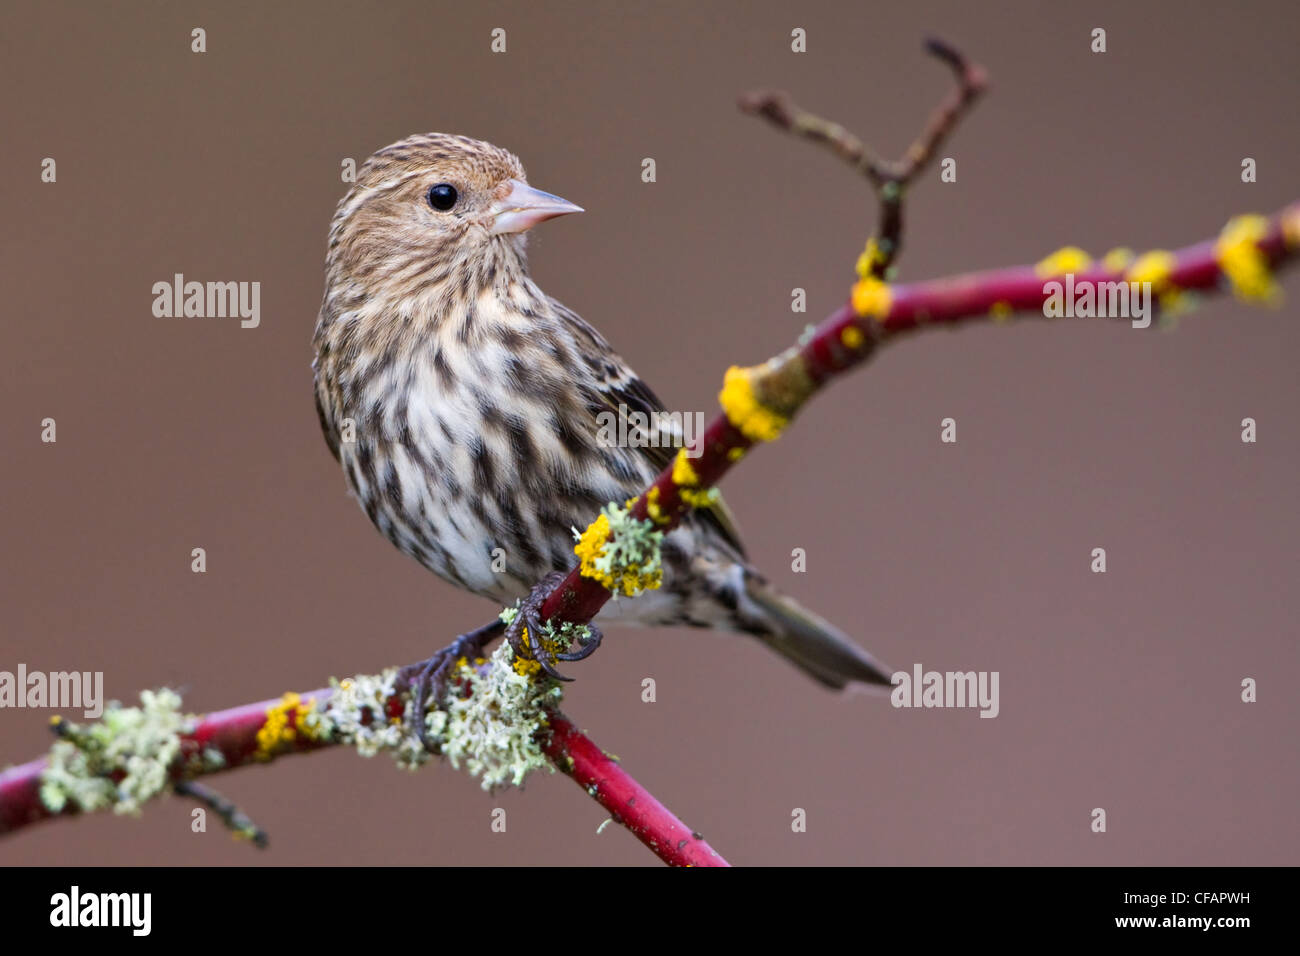 Pine siskin (Carduelis pinus) perched on a branch in Victoria, Vancouver Island, British Columbia, Canada Stock Photo